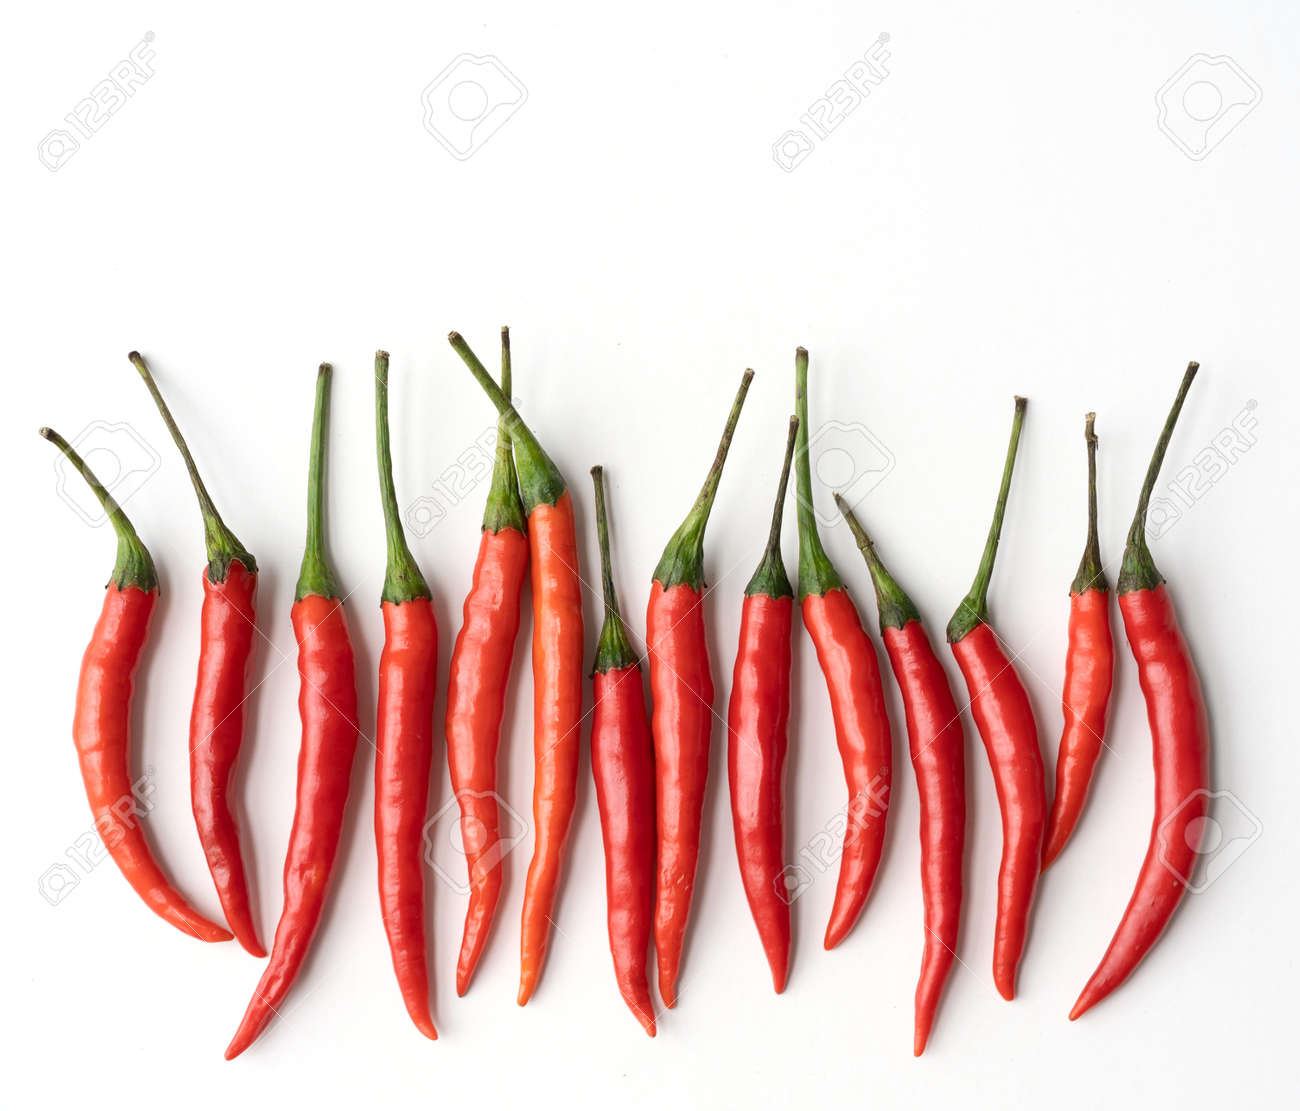 Chili peppers with sliced red chili peppers isolated on white background. Hot and spicy food. Vegetable. Seasoning ingredient. - 172003129